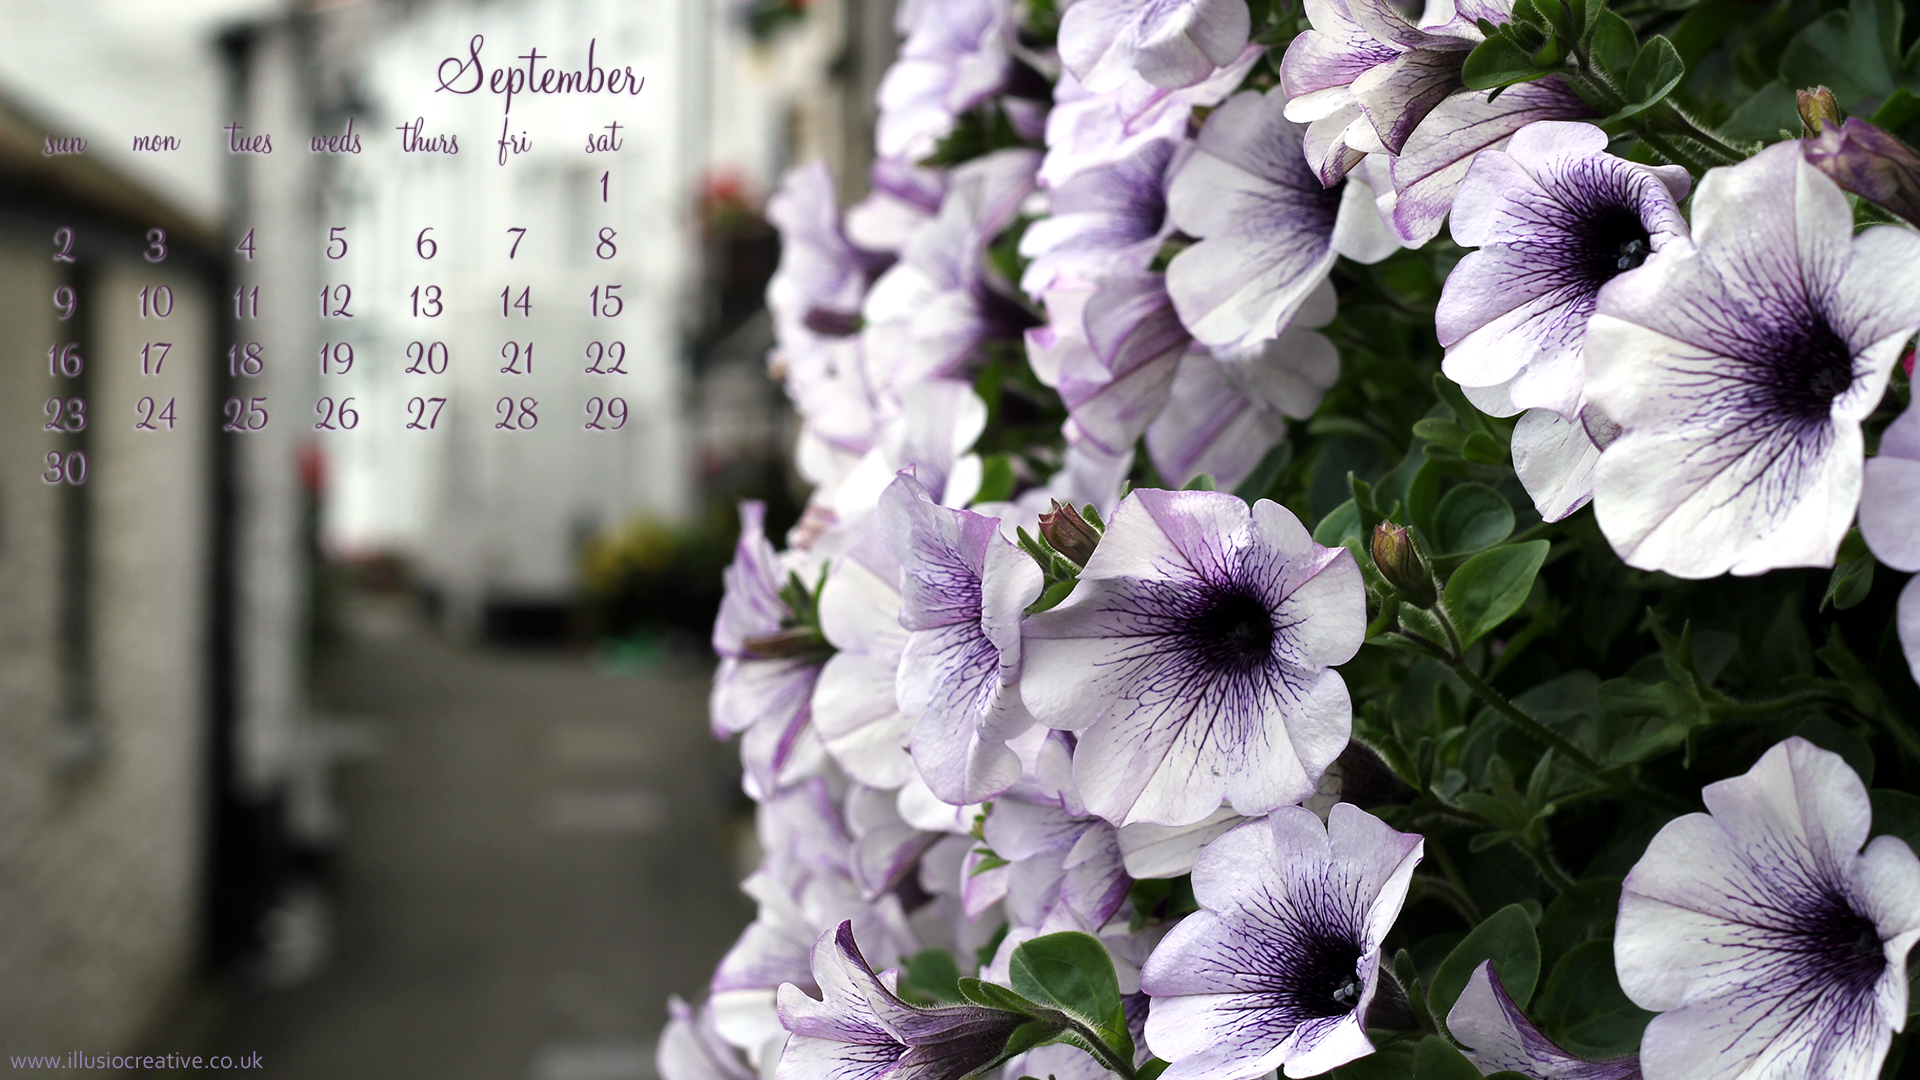 September 2012 Desktop Calendar - Polperro - 1920 x1080